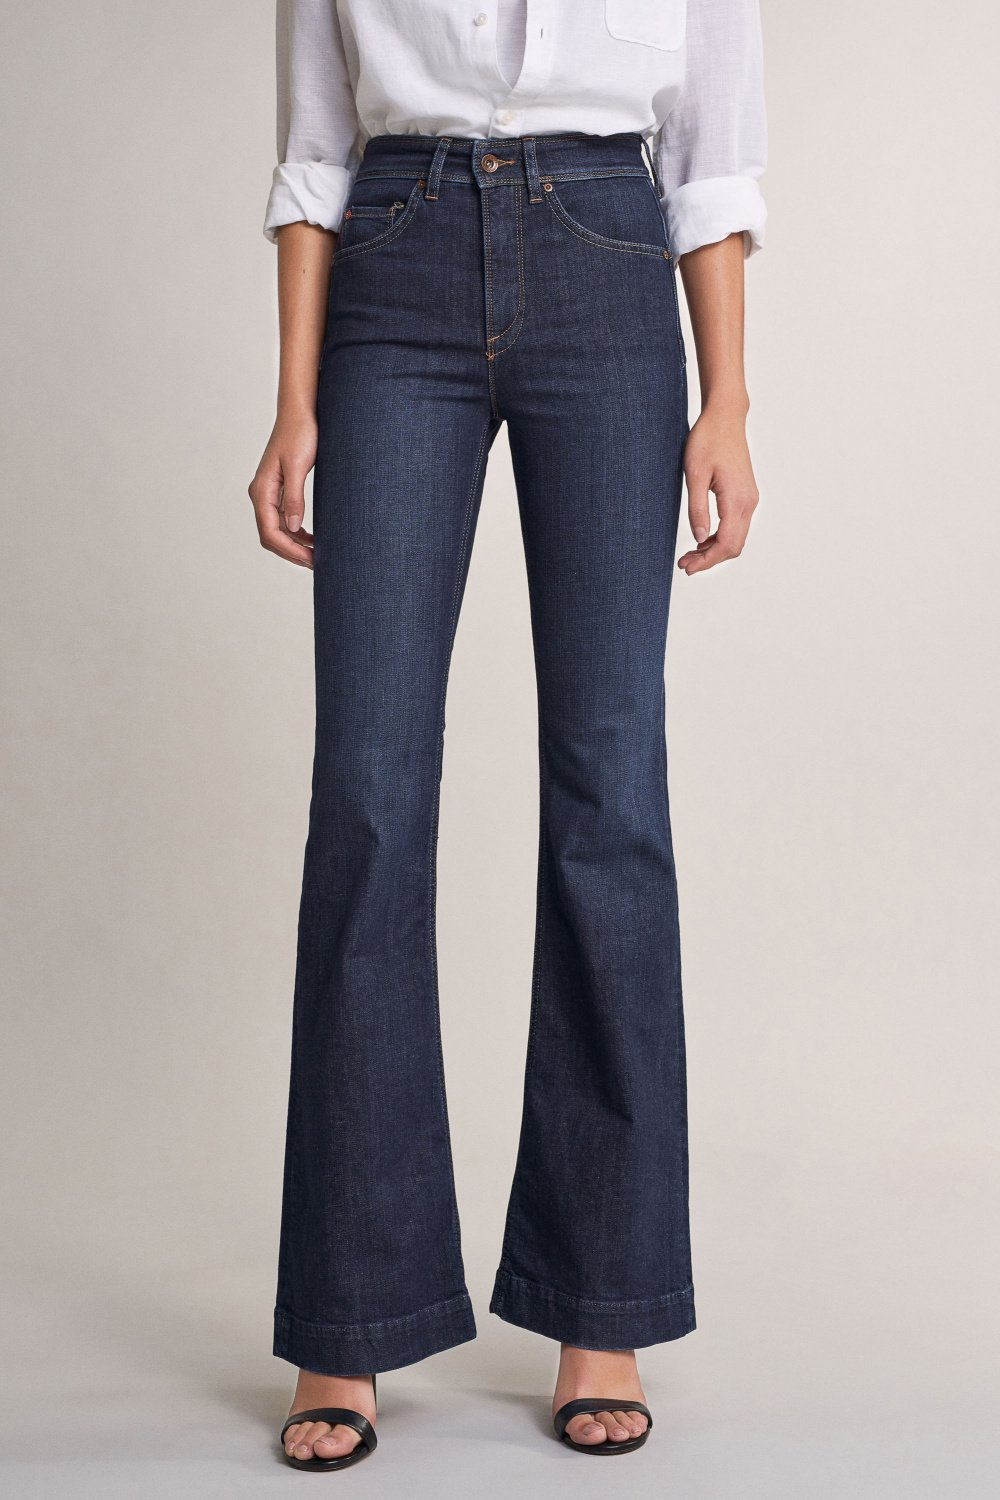 Jeans secret glamour push in flare - Salsa